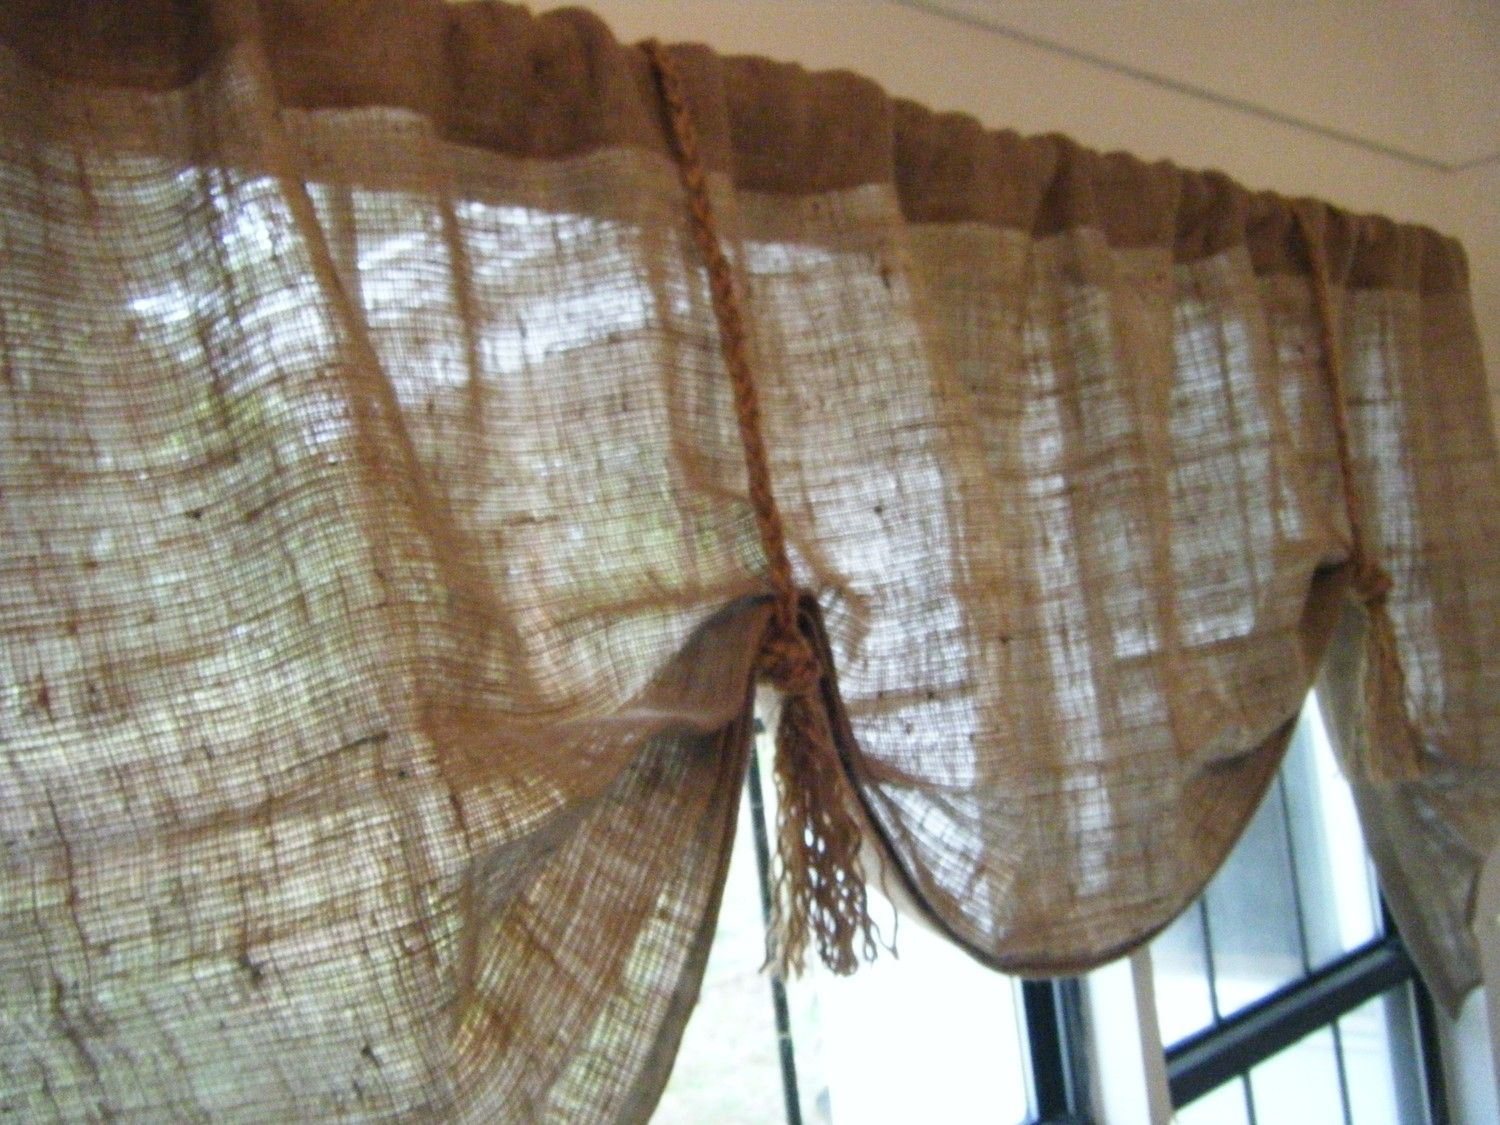 Awesome Burlap Curtains for my kitchen window Making these in